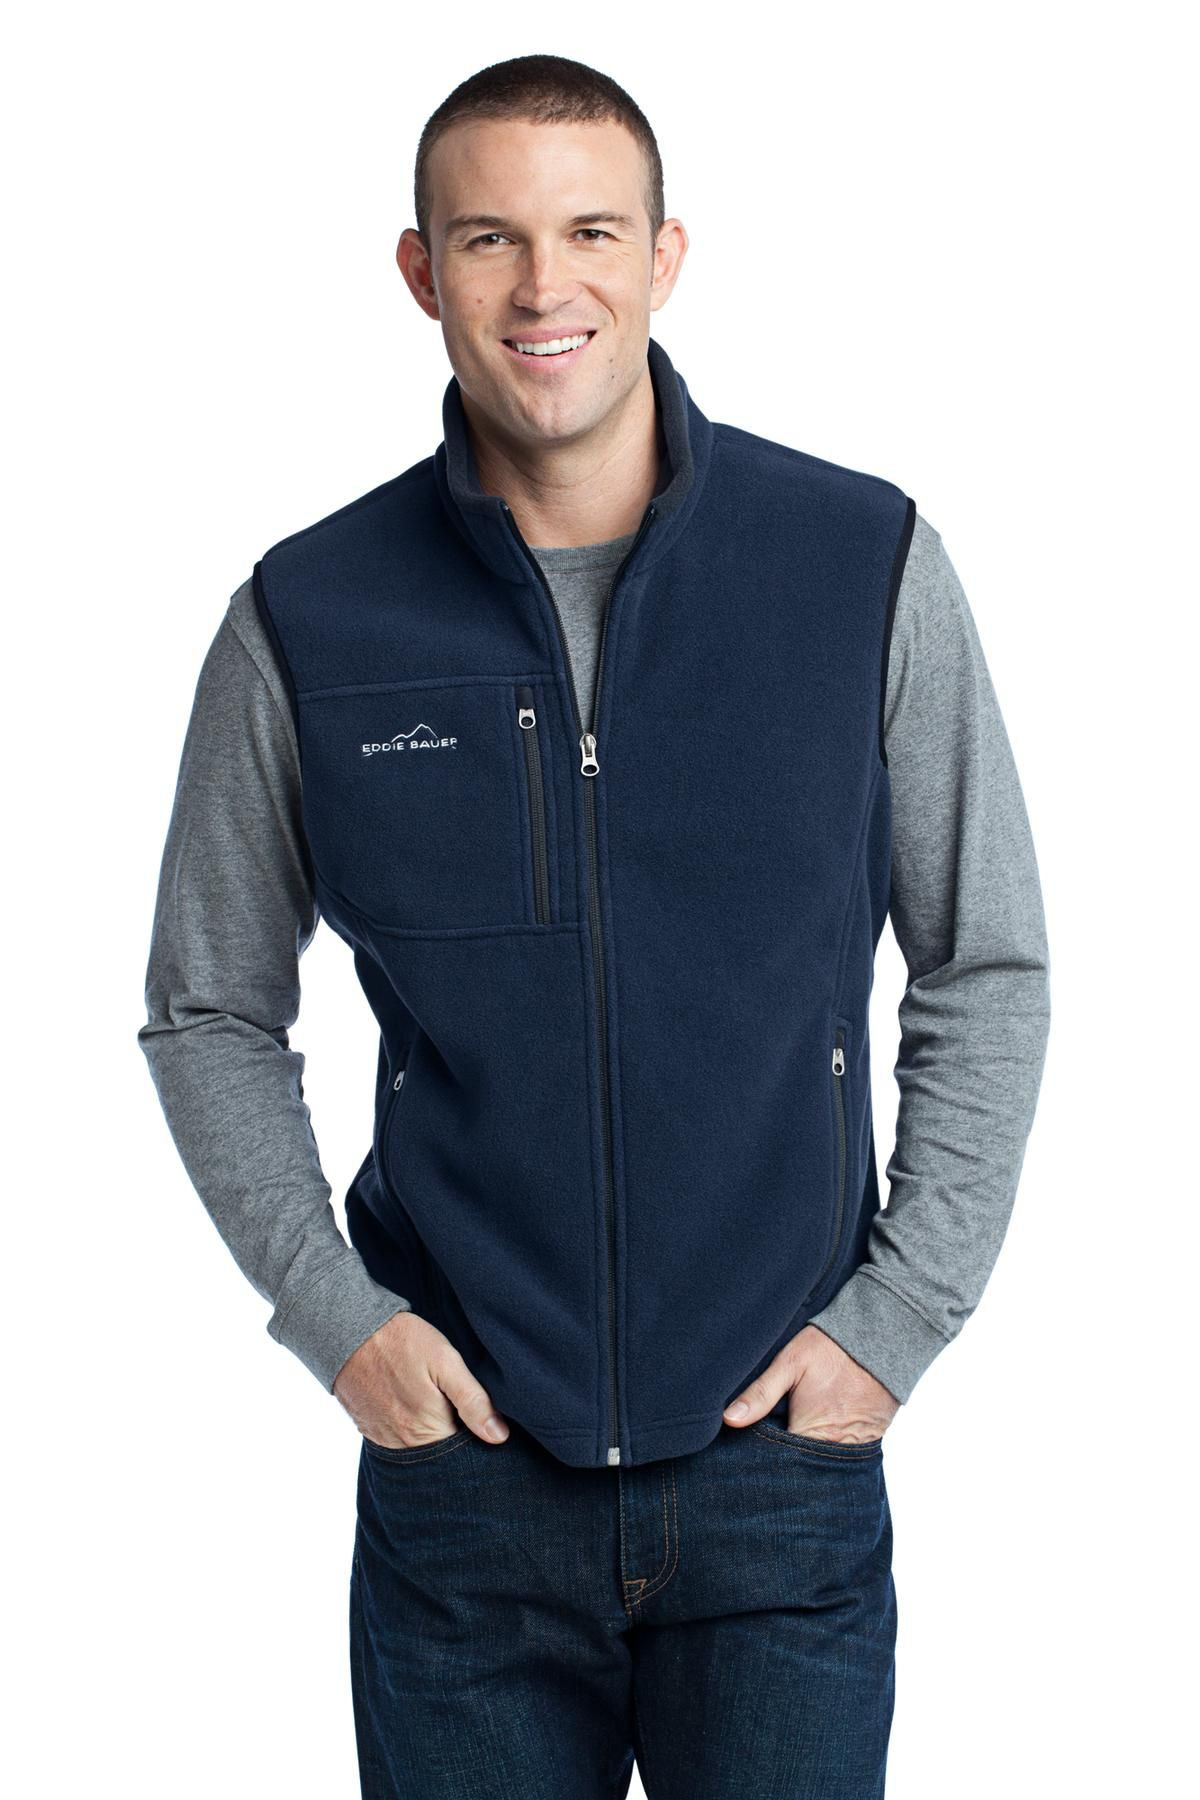 Men's custom navy blue polyester fleece full zip up with embroidered logo  on left chest with